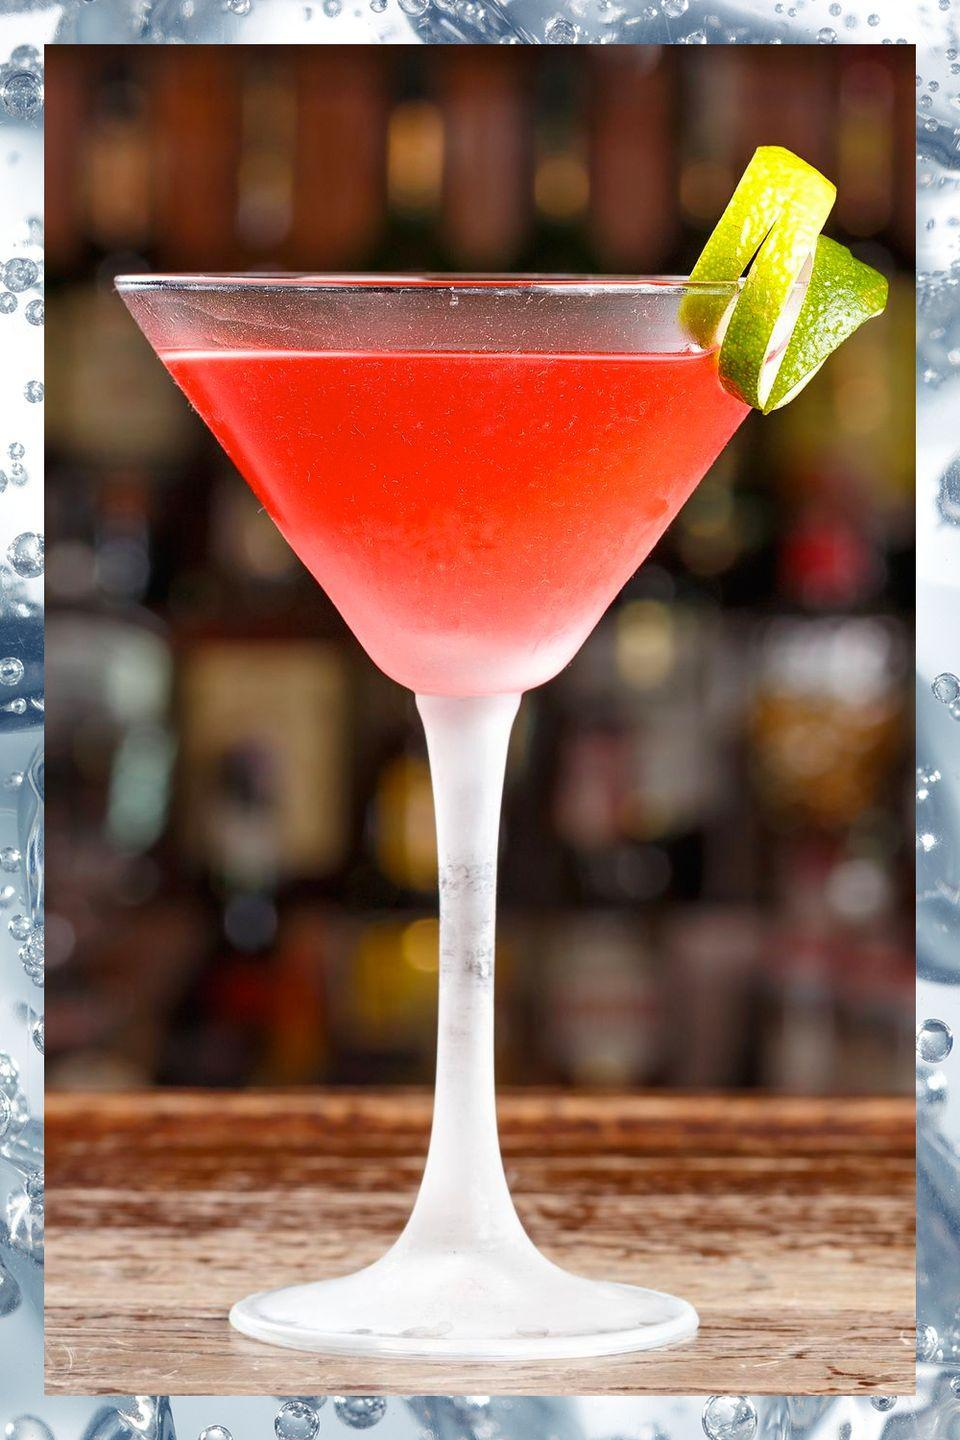 <p>The cosmo became almost ubiquitous in the '90s thanks to the TV show <em>Sex and the City</em>, but this spin on the martini remains just as tasty today as when Carrie Bradshaw made it famous. </p><p>- 1.5 oz citrus vodka<br>- 1 oz Cointreau <br>- .5 oz lime juice<br>- .25 oz cranberry juice</p><p><em>Build all ingredients in a shaker tine with ice and shake. Strain into a martini glass and garnish with lime wheel or zest. </em></p>